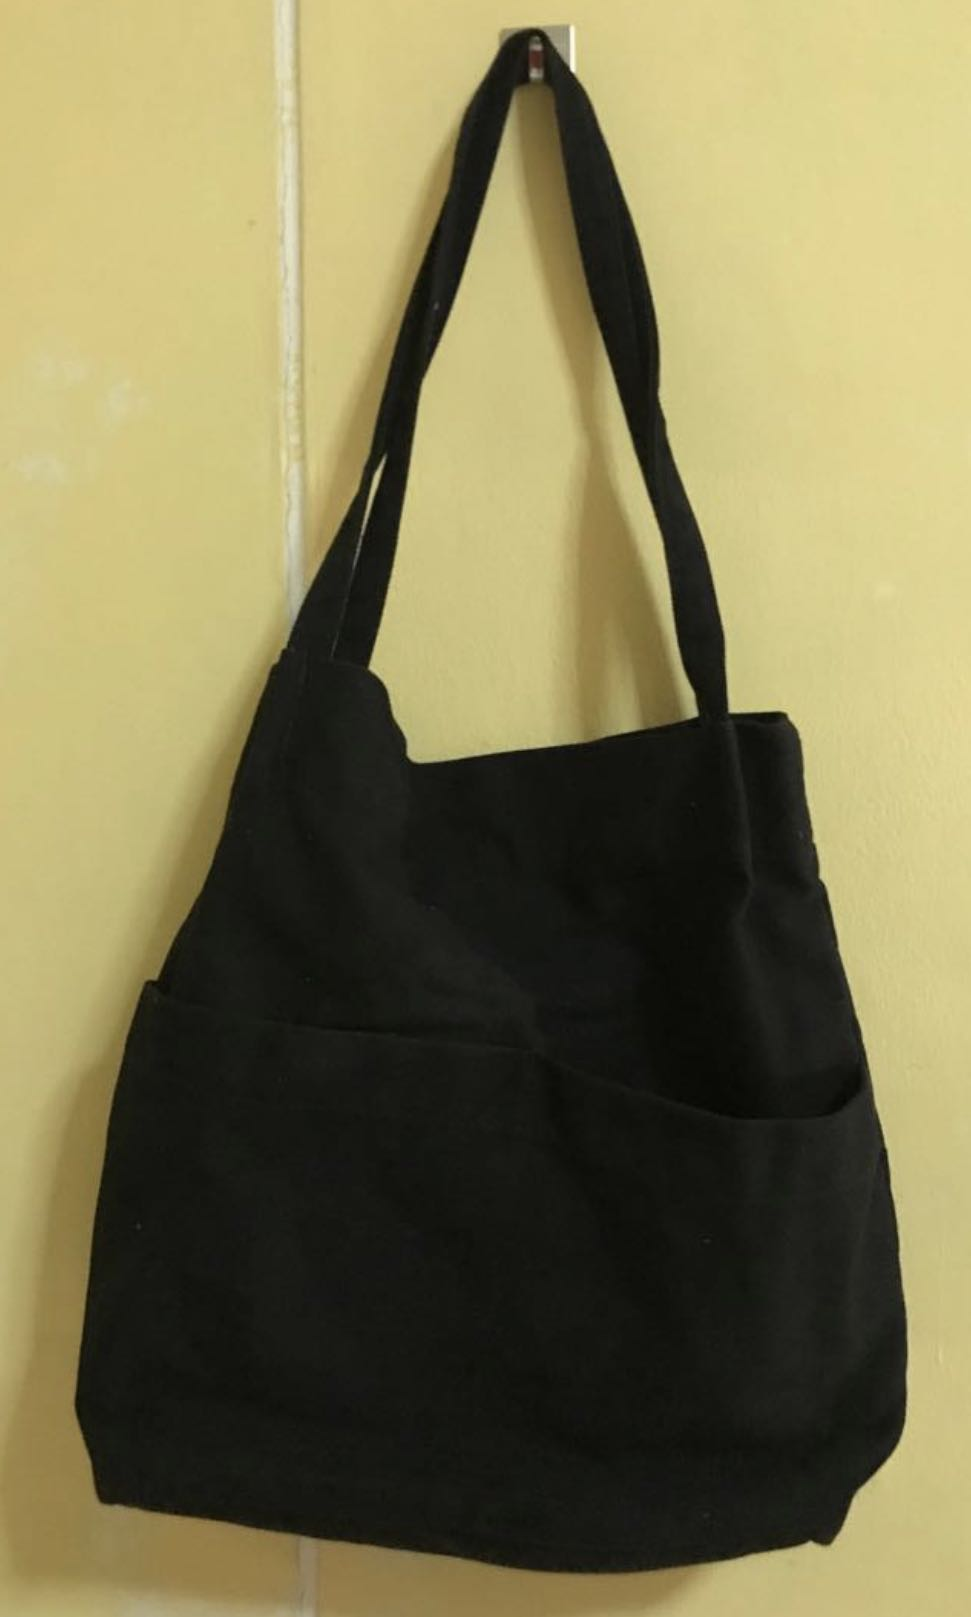 2 pocket tote bag